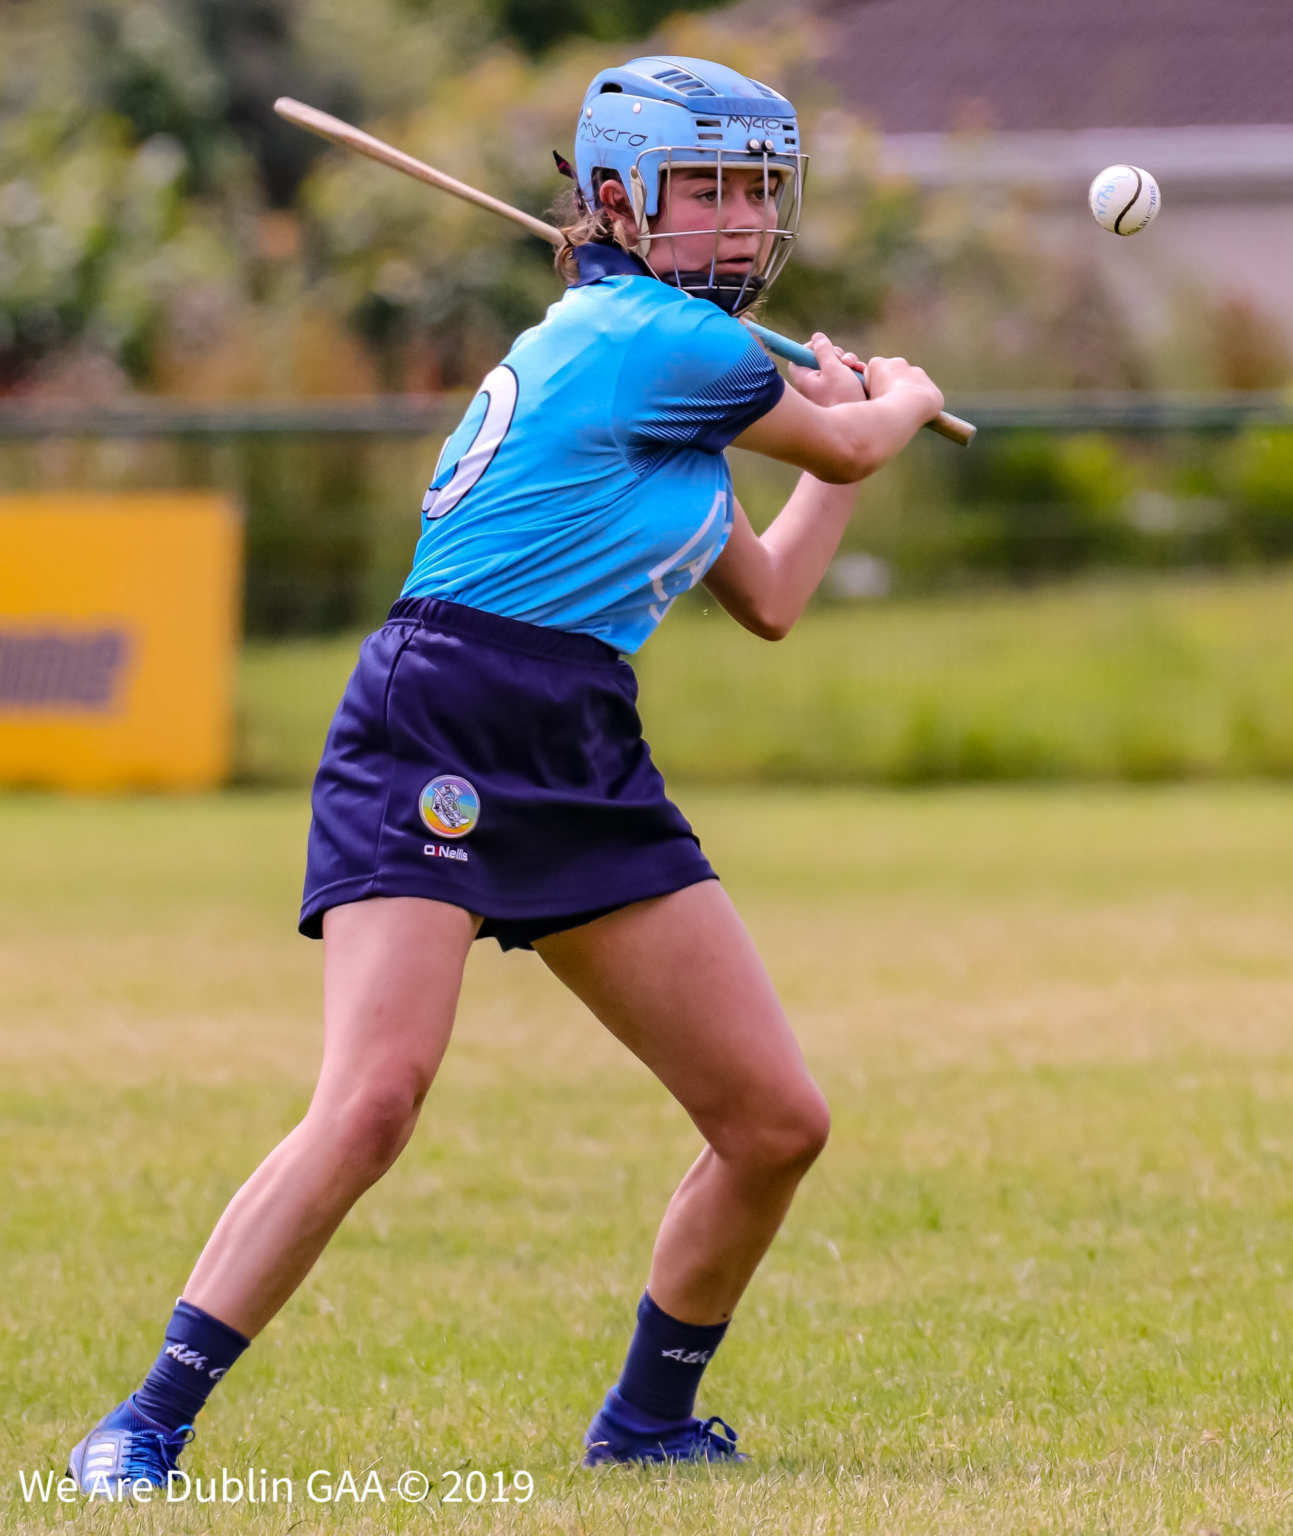 A Dublin Camogie Player About To Strike The Ball, attention turns to club action this week as the Senior 1 Club Championship Final takes place.